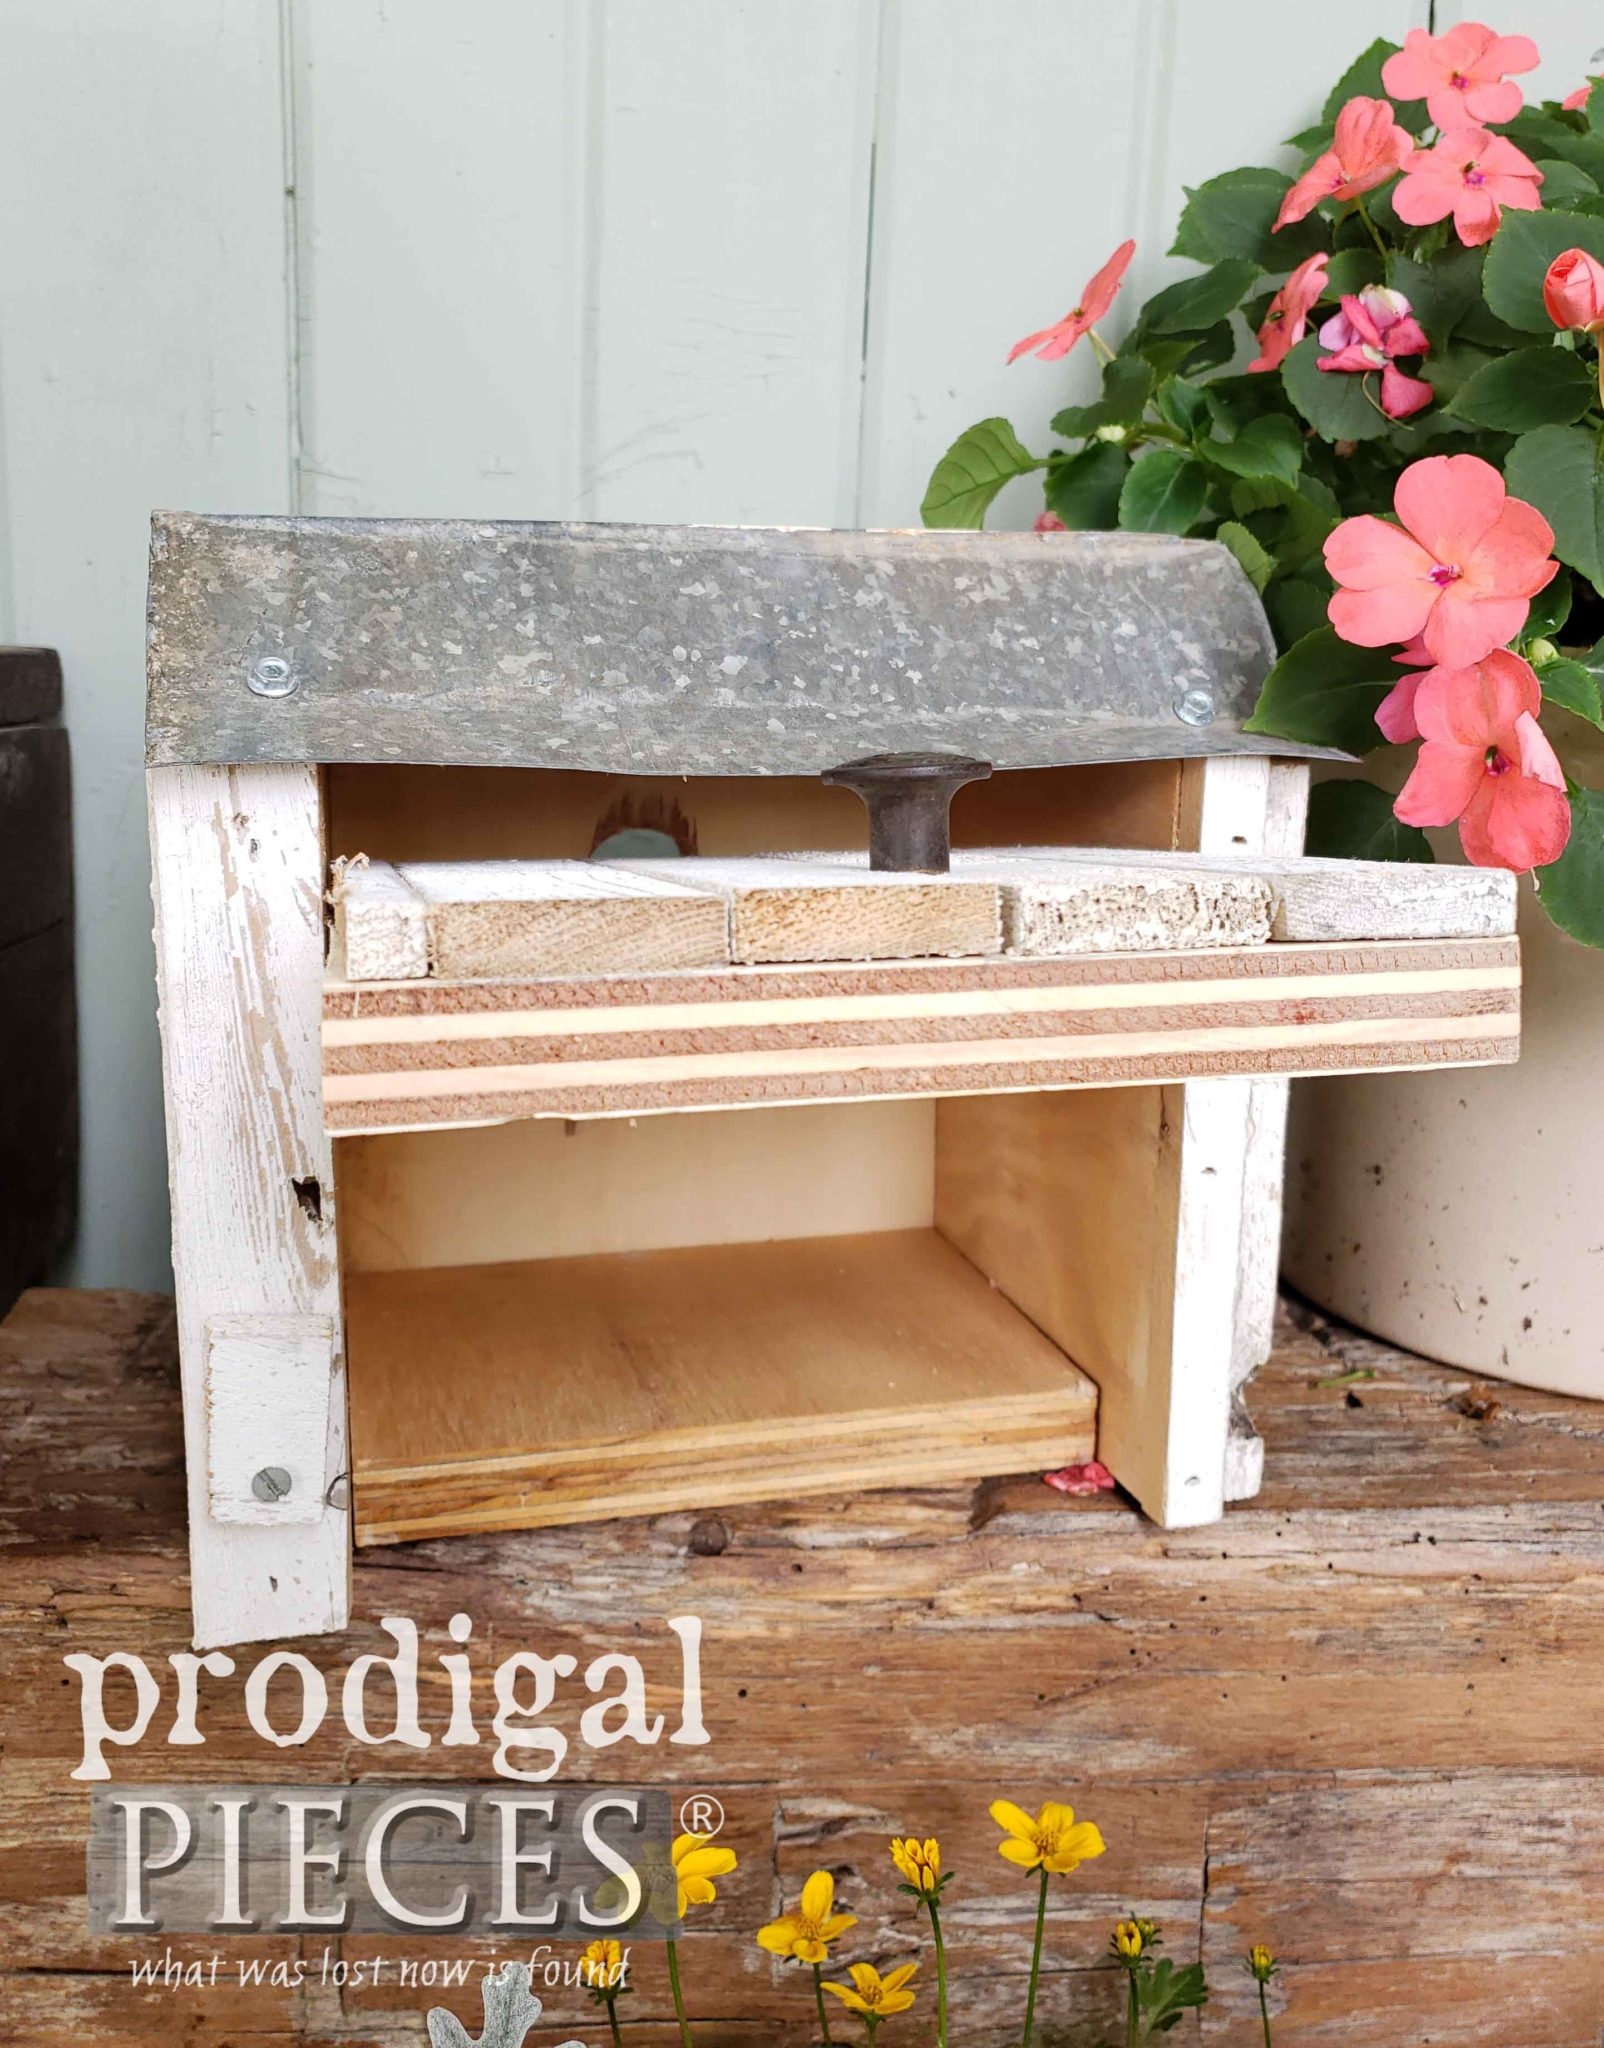 Open Birdhouse Makes for Easy Spring Cleaning | Prodigal Pieces | prodigalpieces.com